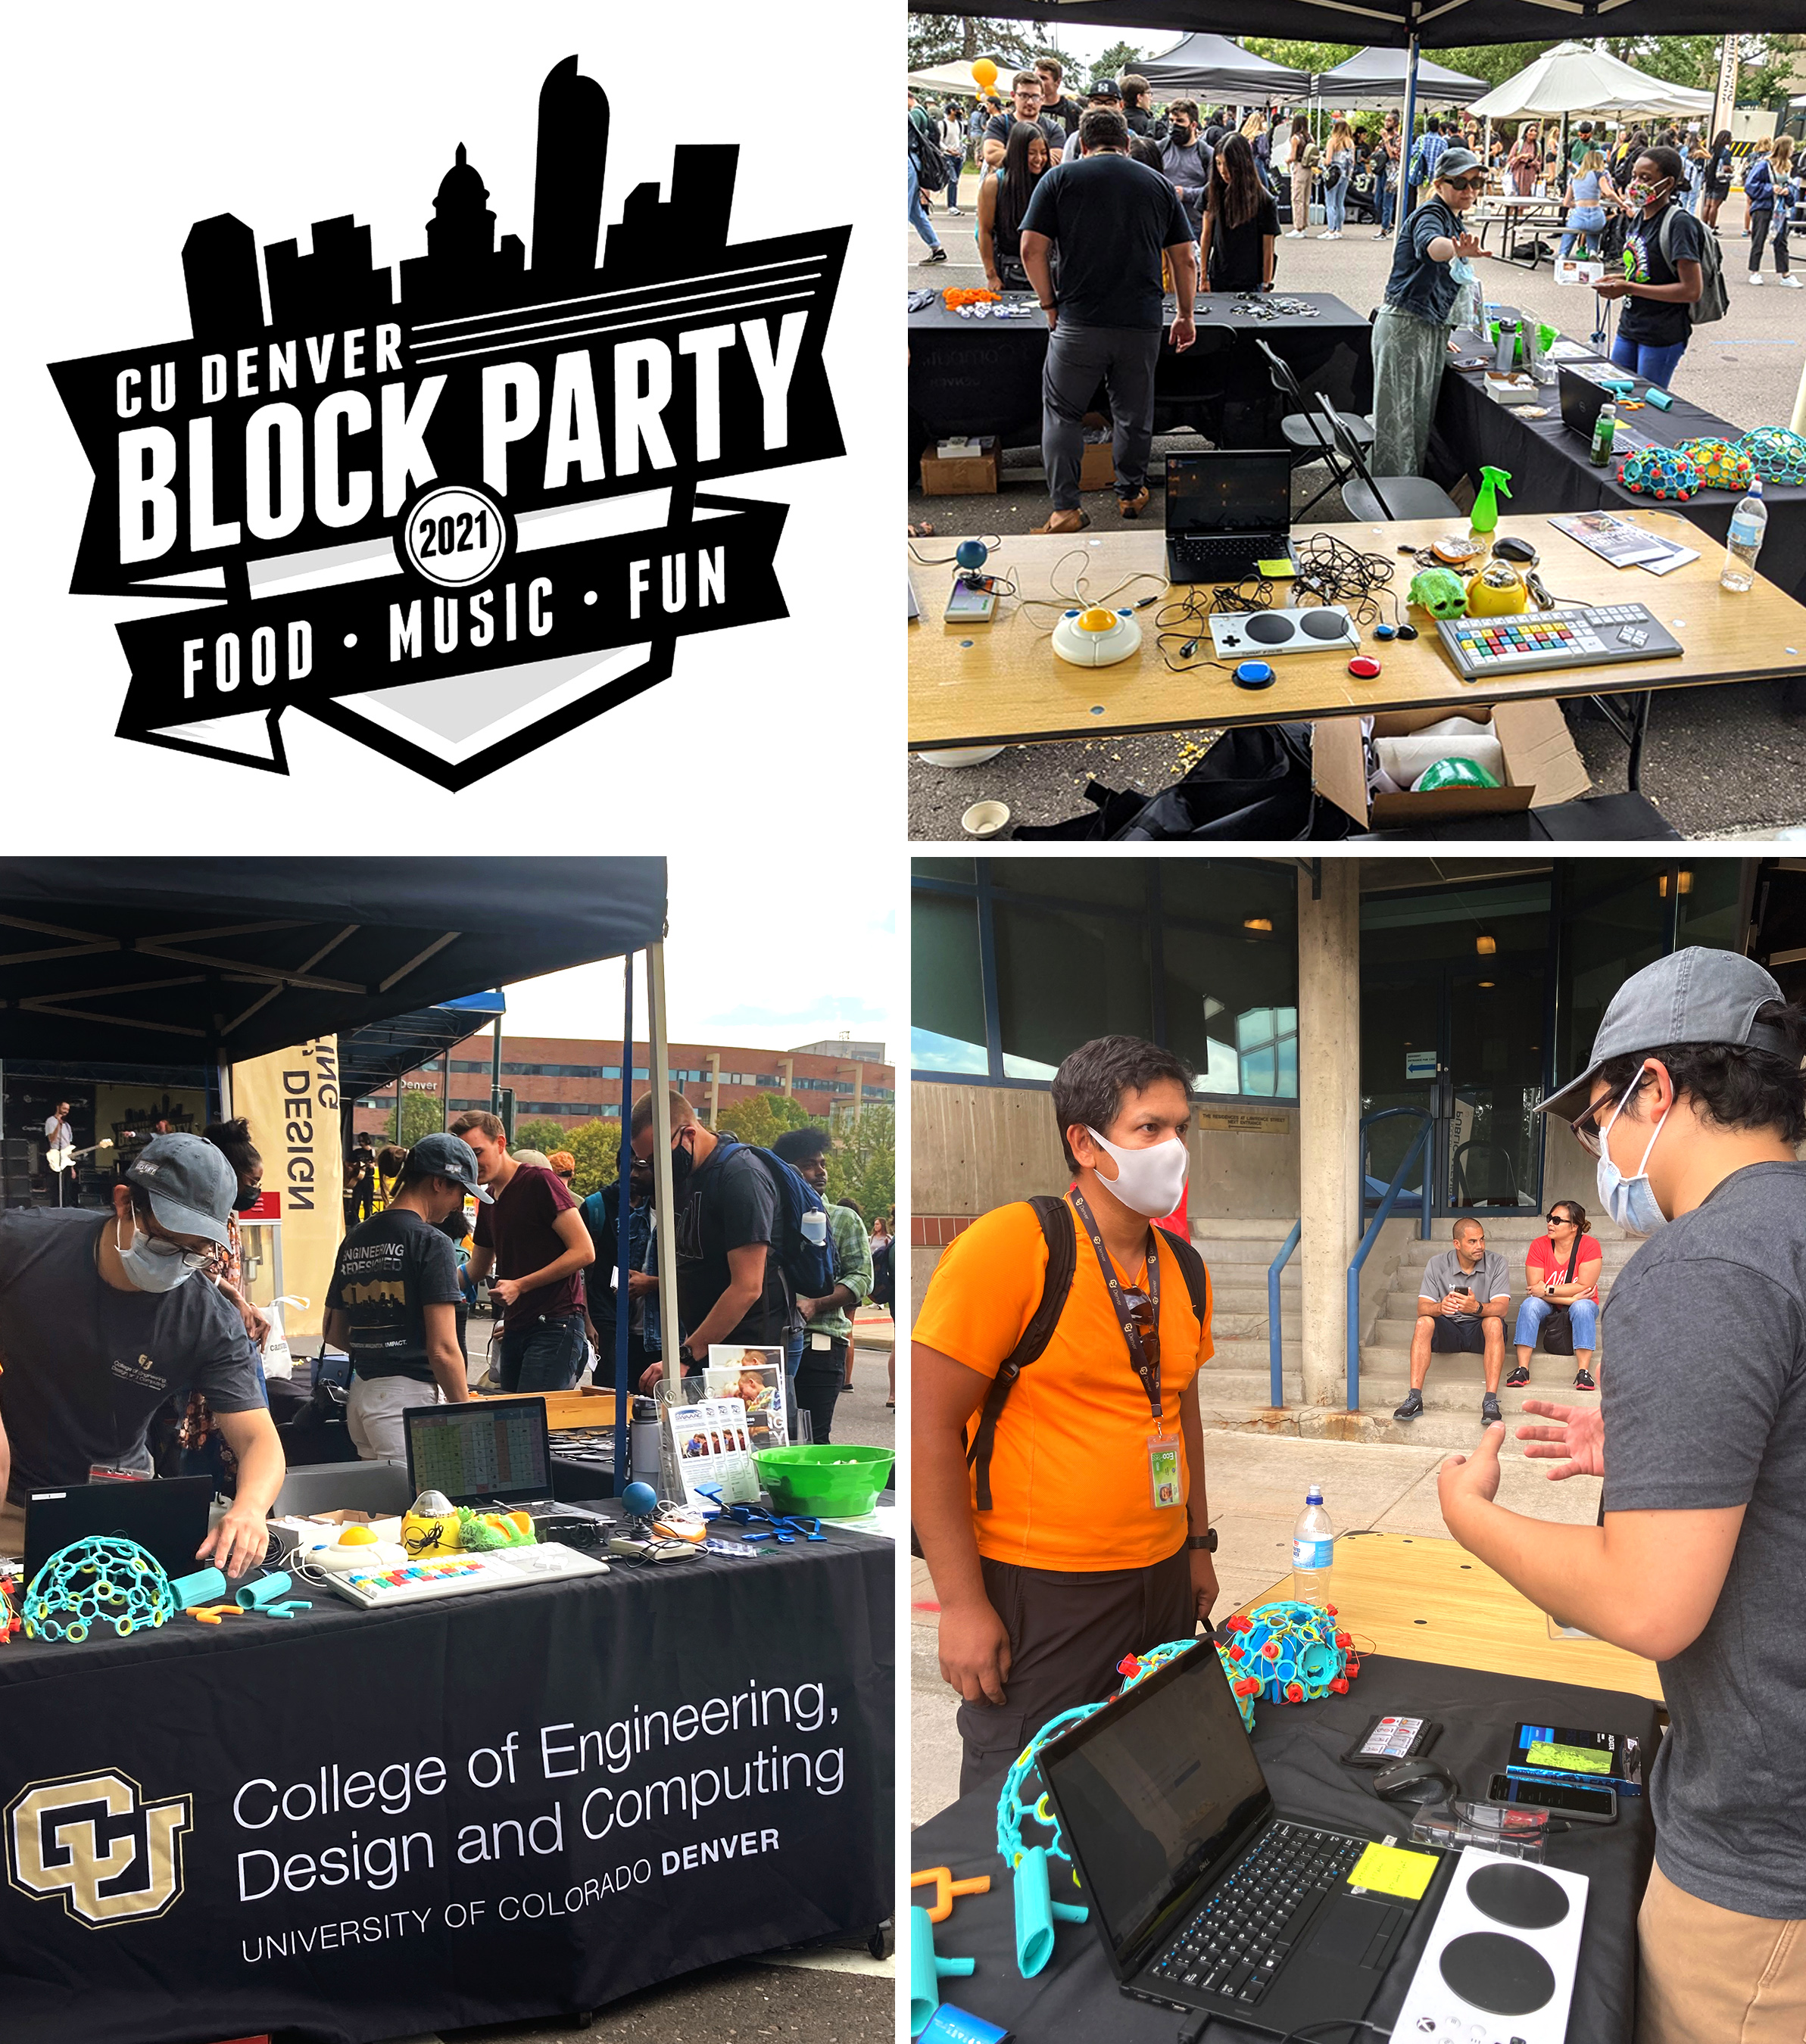 An image of the CIDE table at the 2021 CU Denver Block Party